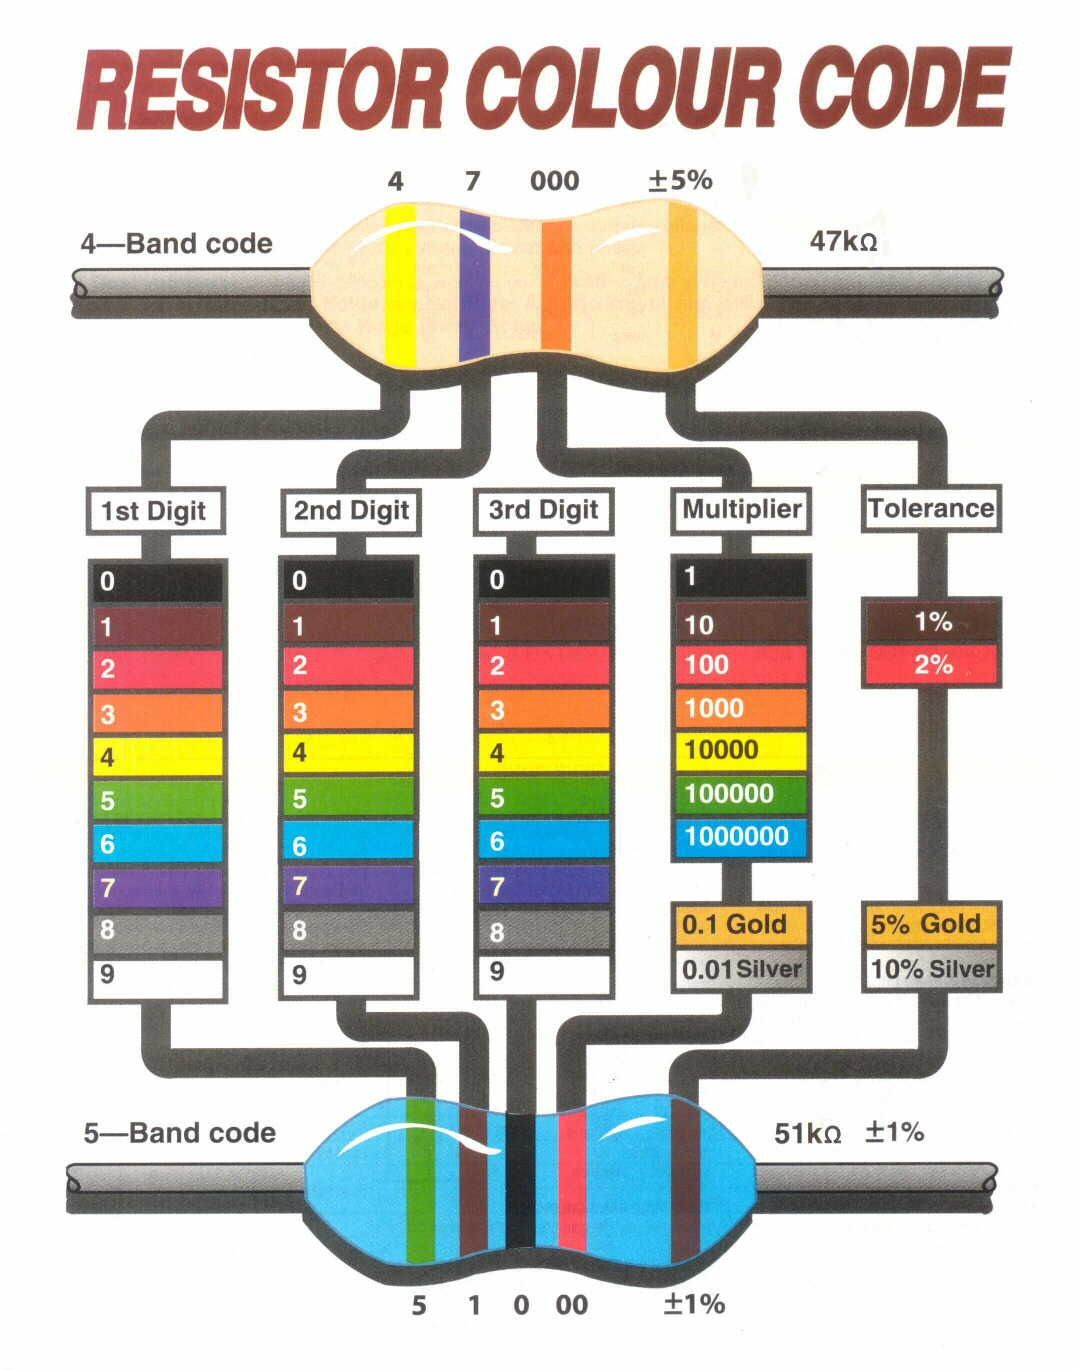 Resistor colour code electronics pinterest electronics resistor color code chart how to read a resistor color code geenschuldenfo Image collections